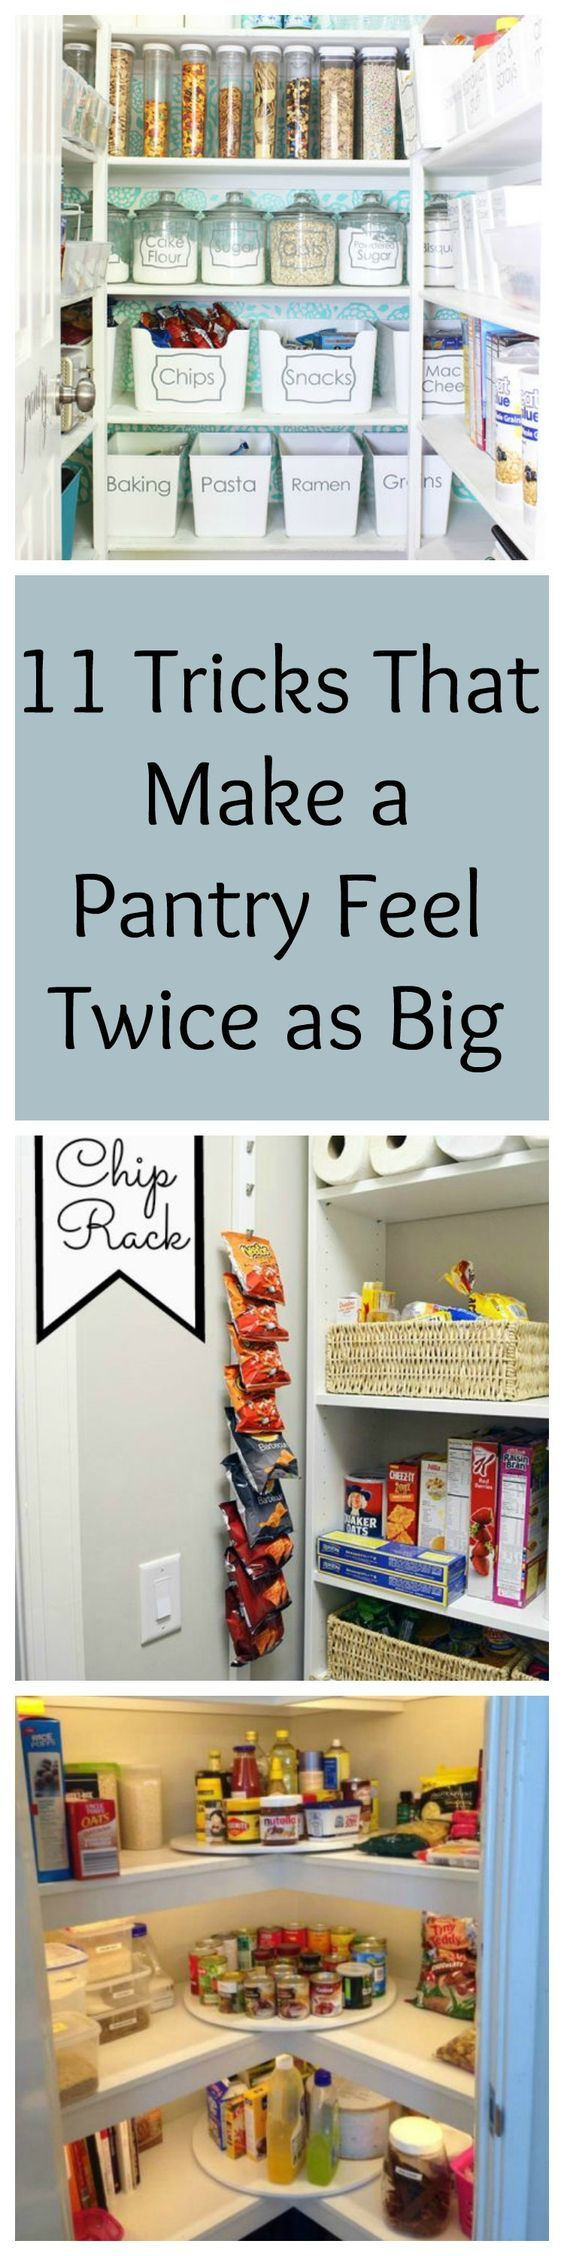 15 Organization Tricks to Make Your Pantry Feel Twice as Big | 11 ...